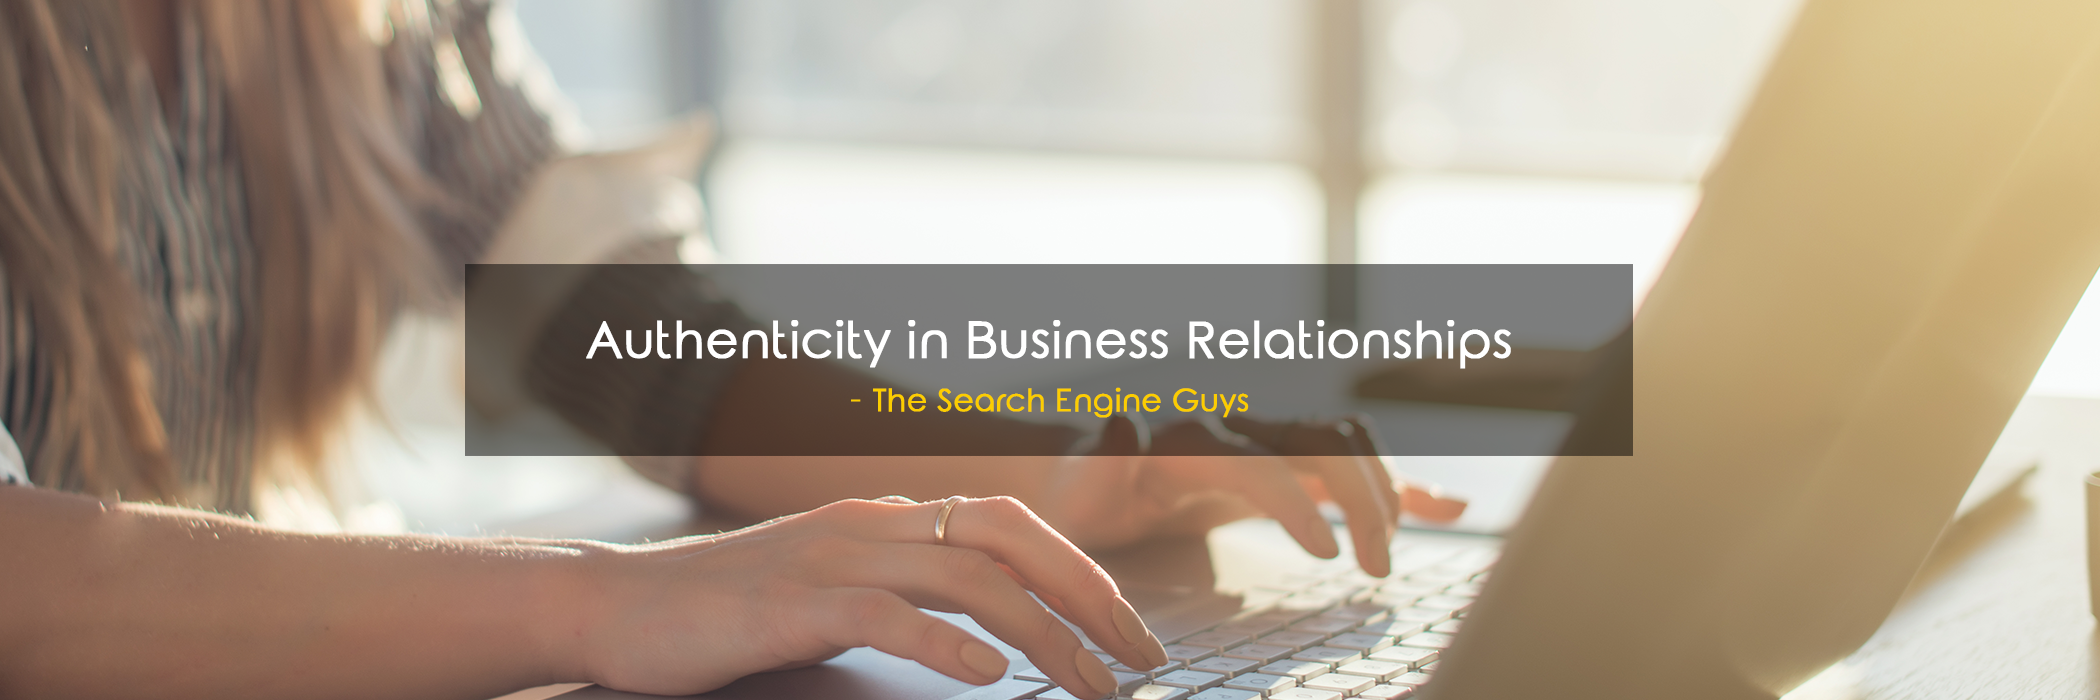 Authenticity in Business Relationships